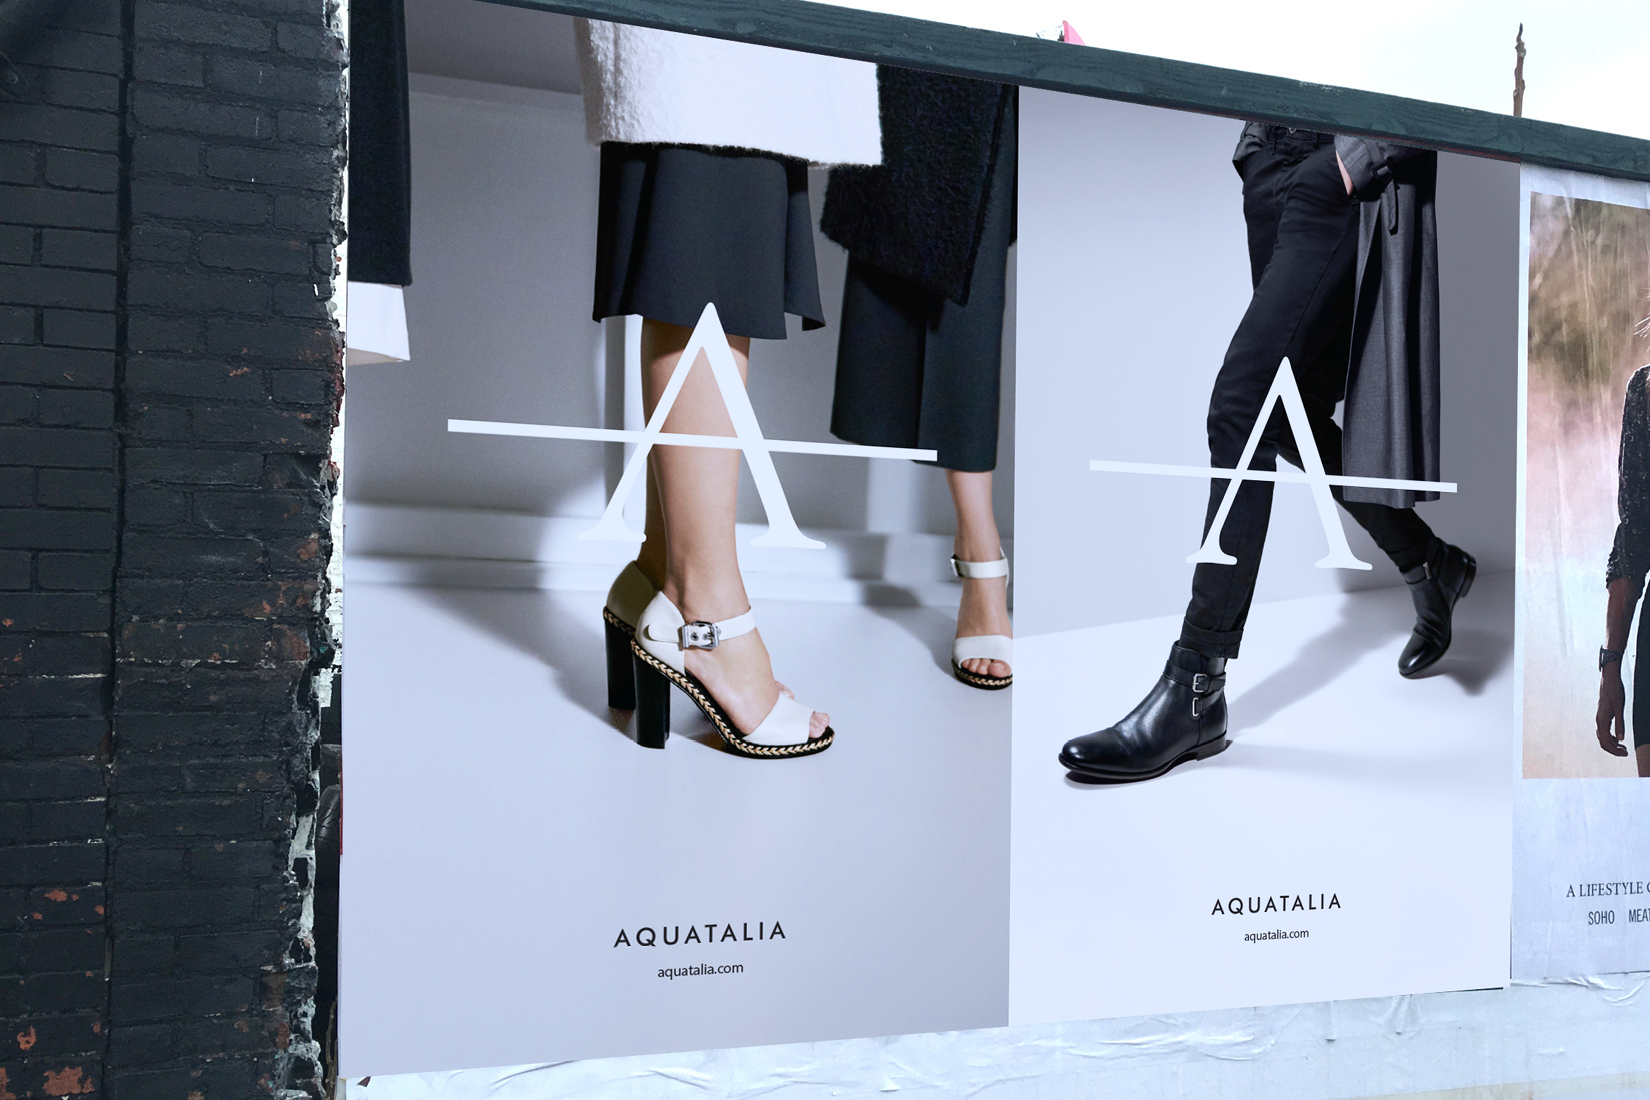 Aquatalia's advertising campaign shot by DTE in the streets of New York.